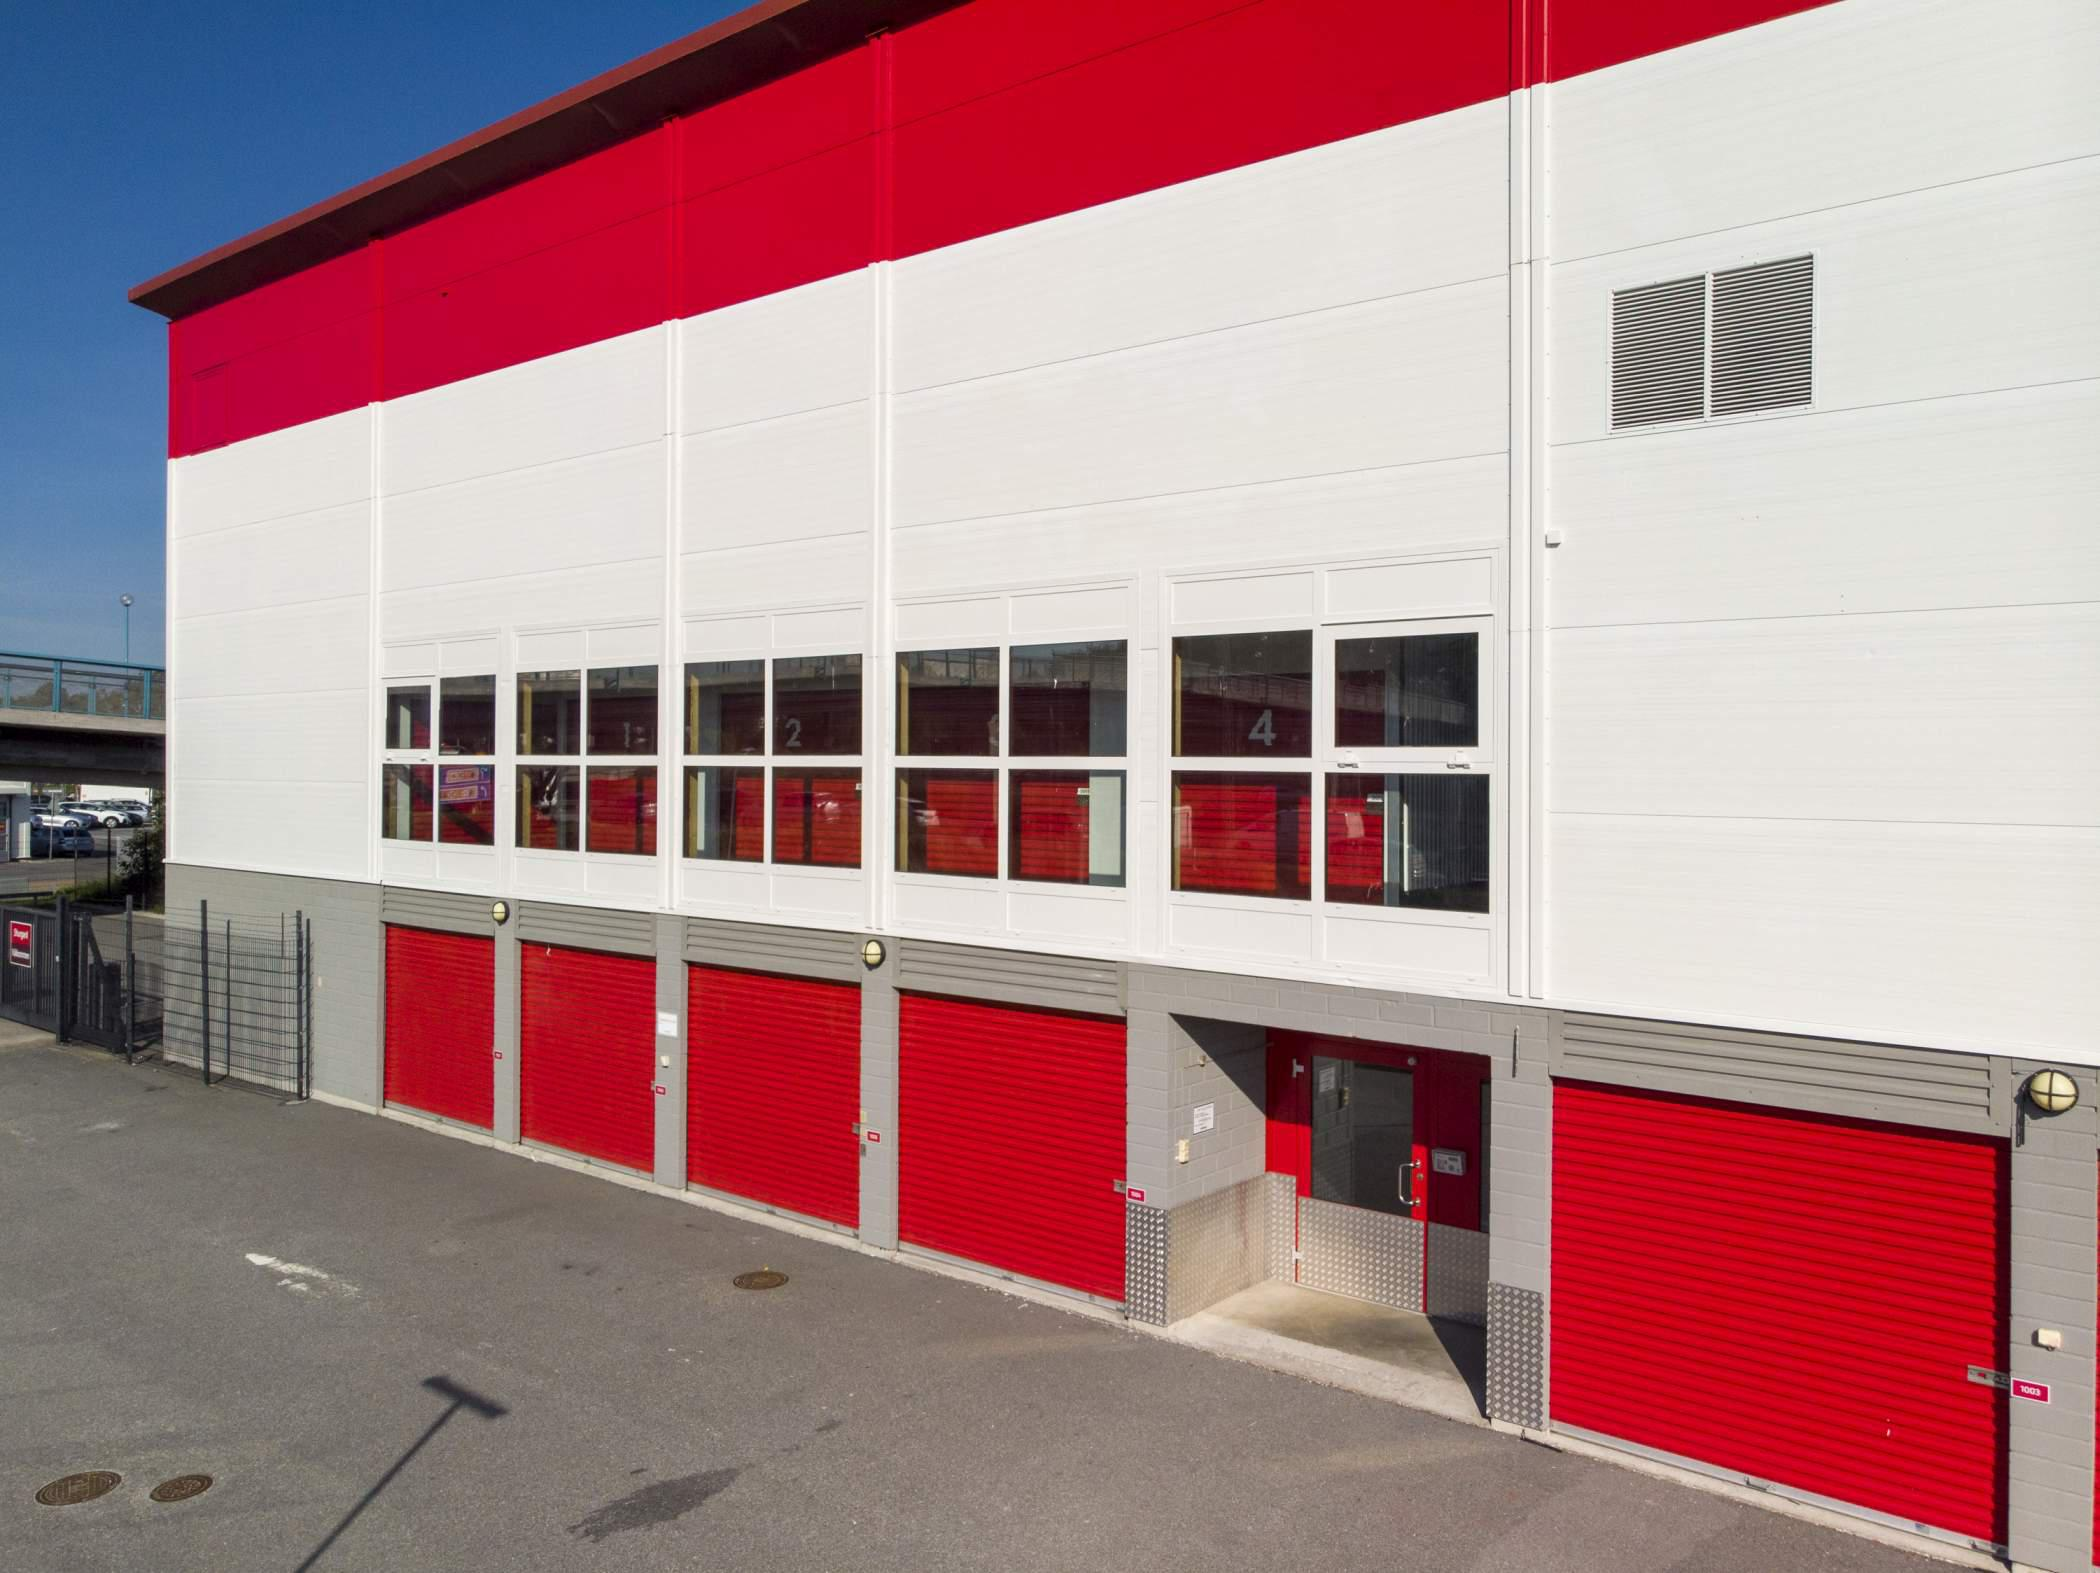 Shurgard Self-Storage Upplands Väsby